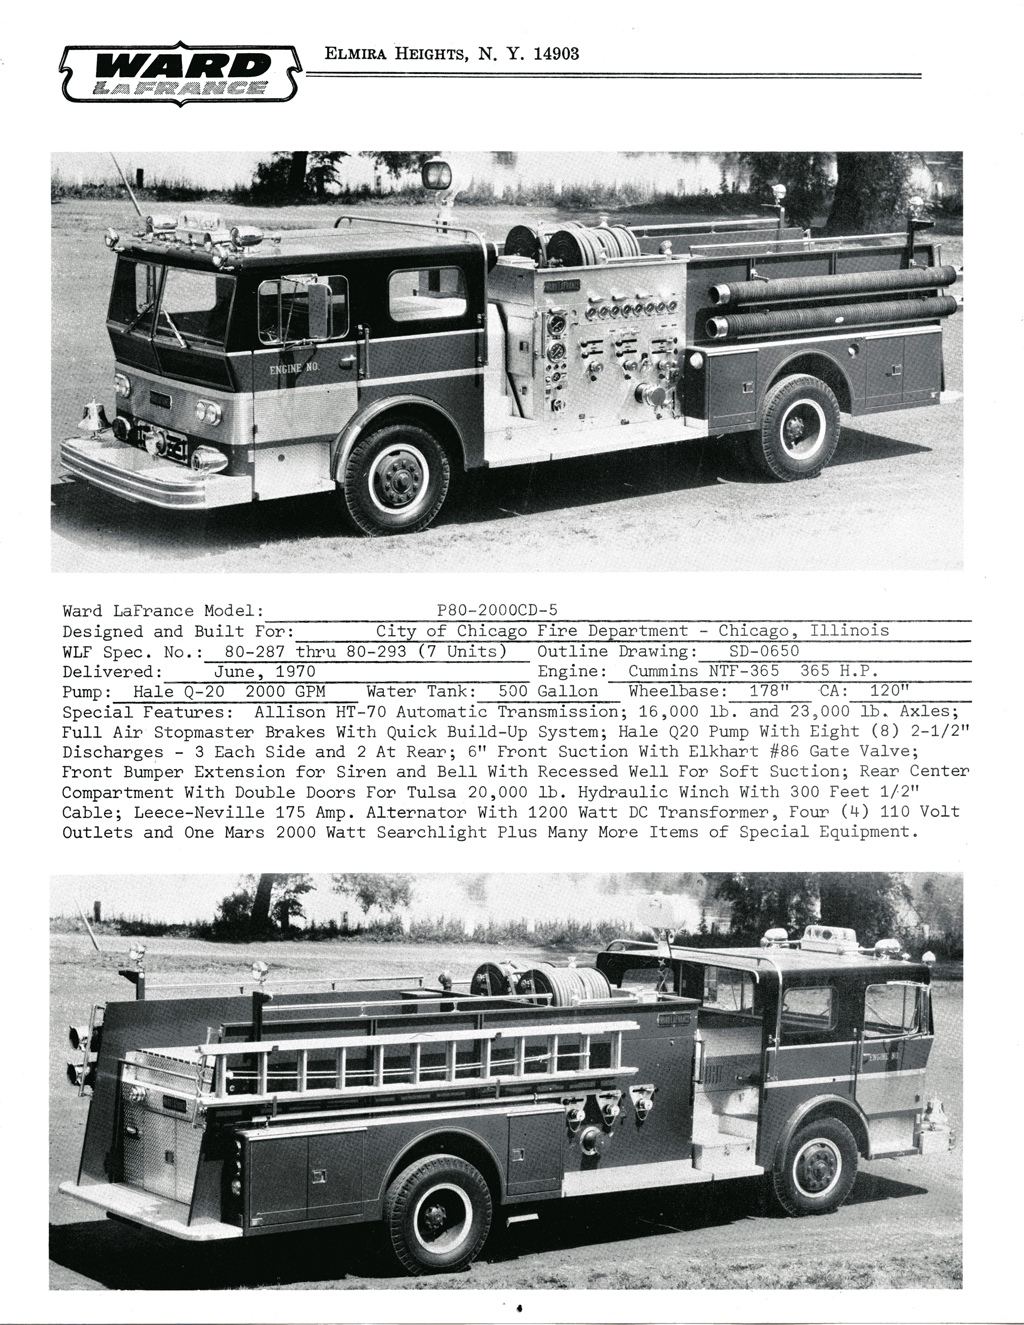 Ward LaFrance 1970 brochure with Chicago engines